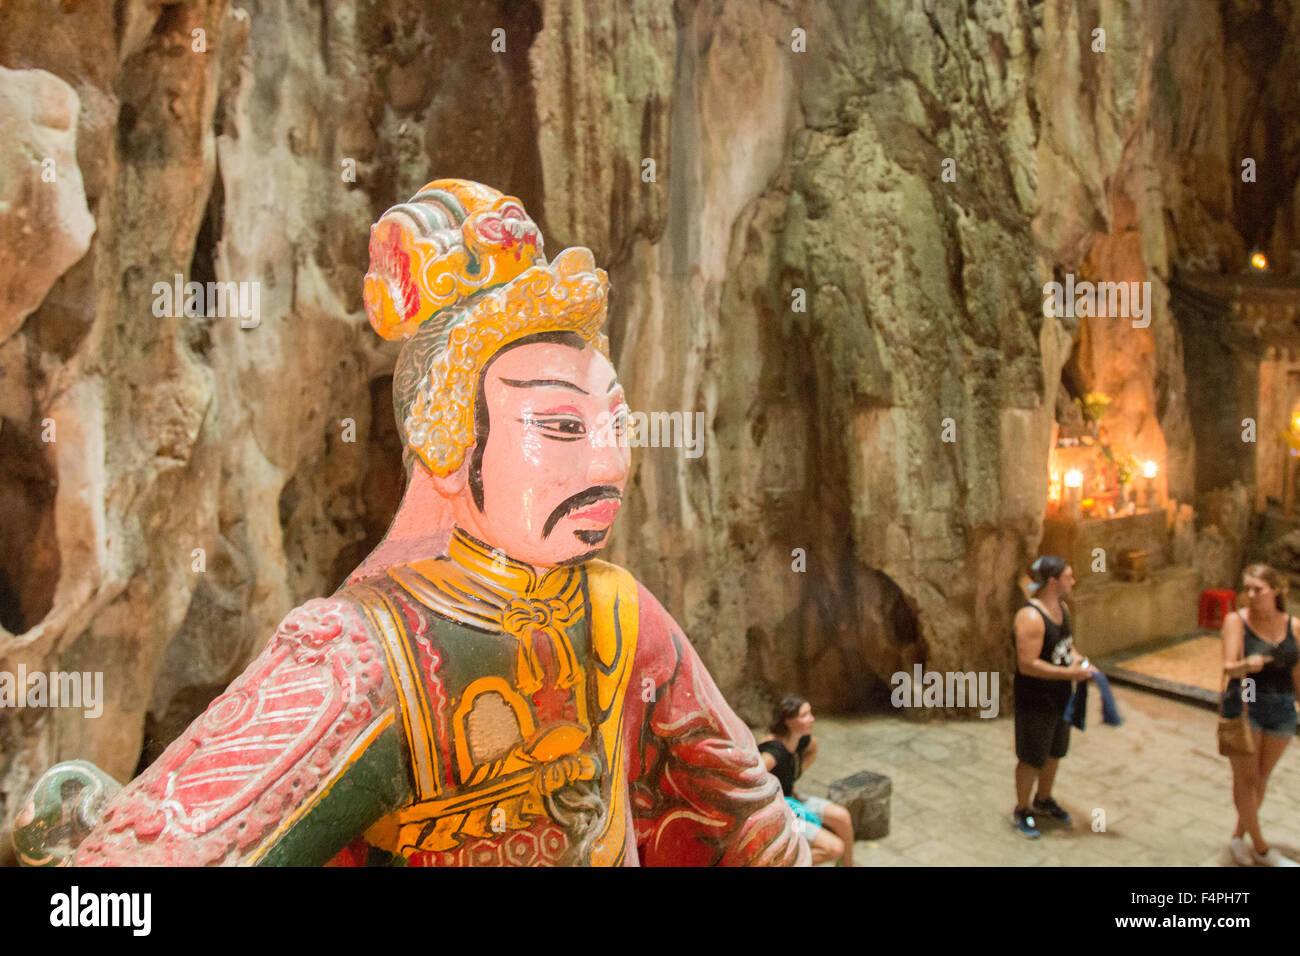 Huyen Khong cave on Thuy Son marble mountain with painted sculpture and tourist visitors,Da Nang,Vietnam - Stock Image